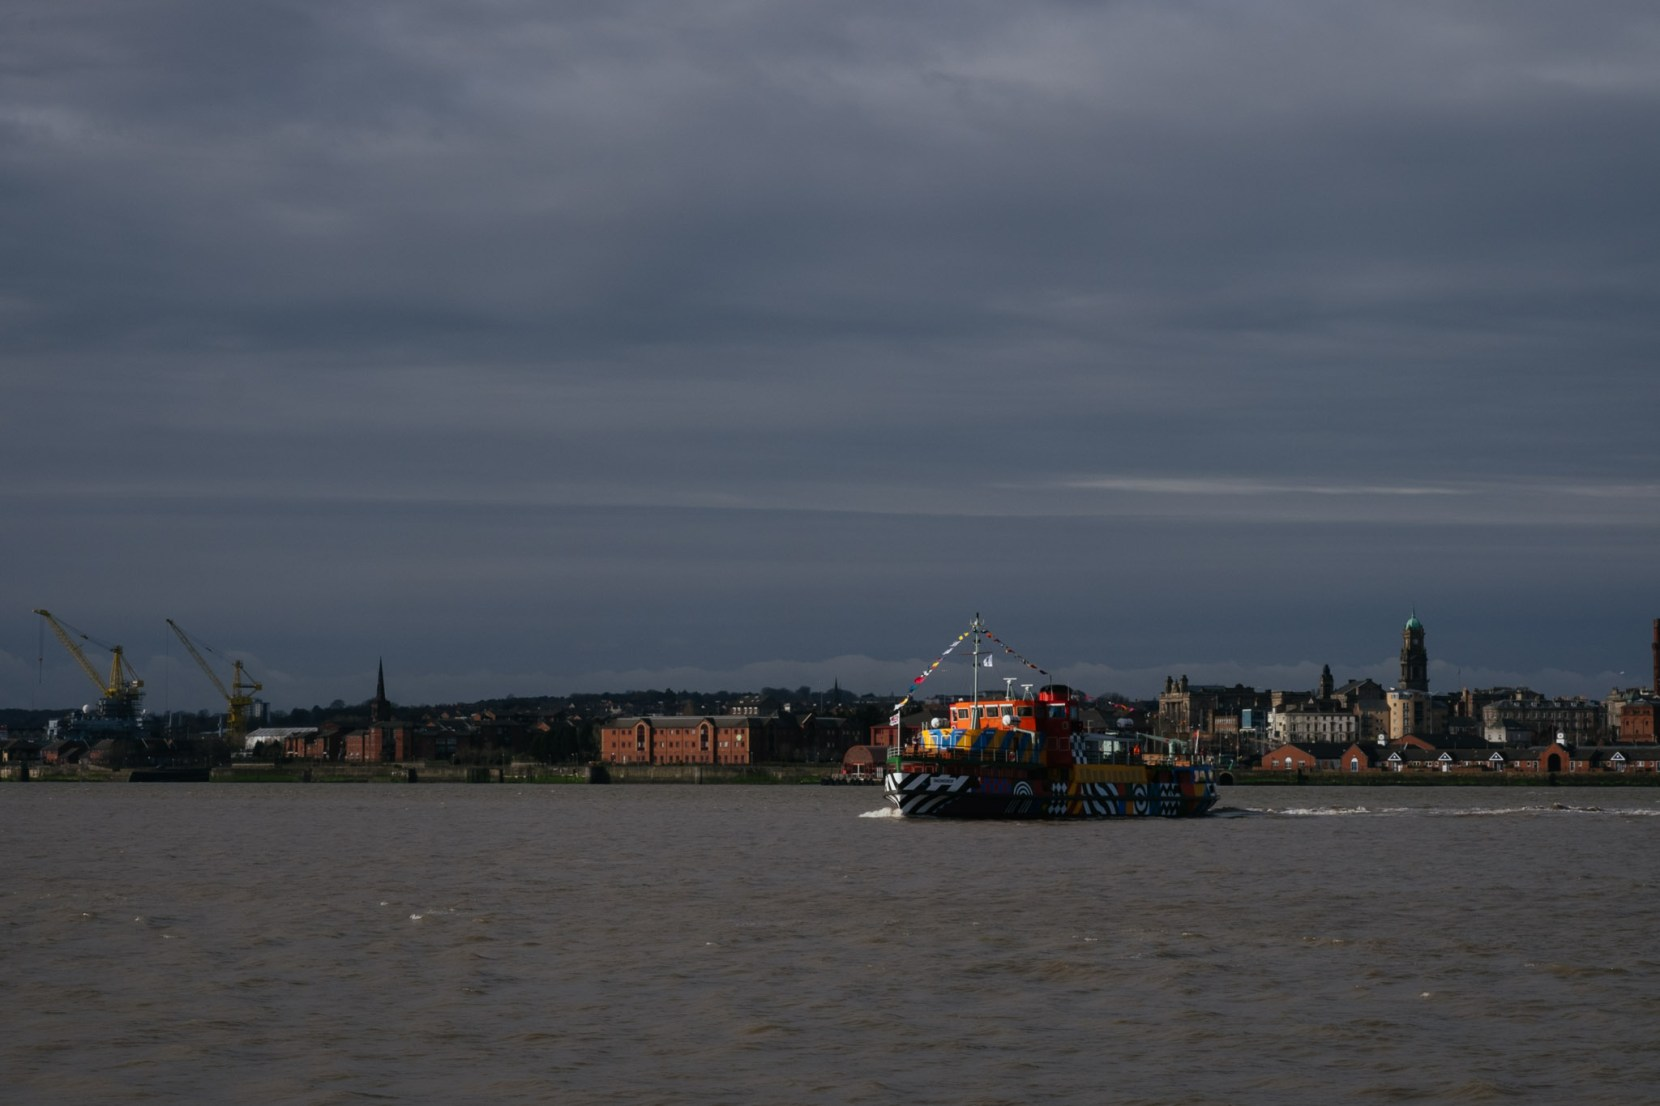 dazzle-ferry-liverpool-3007